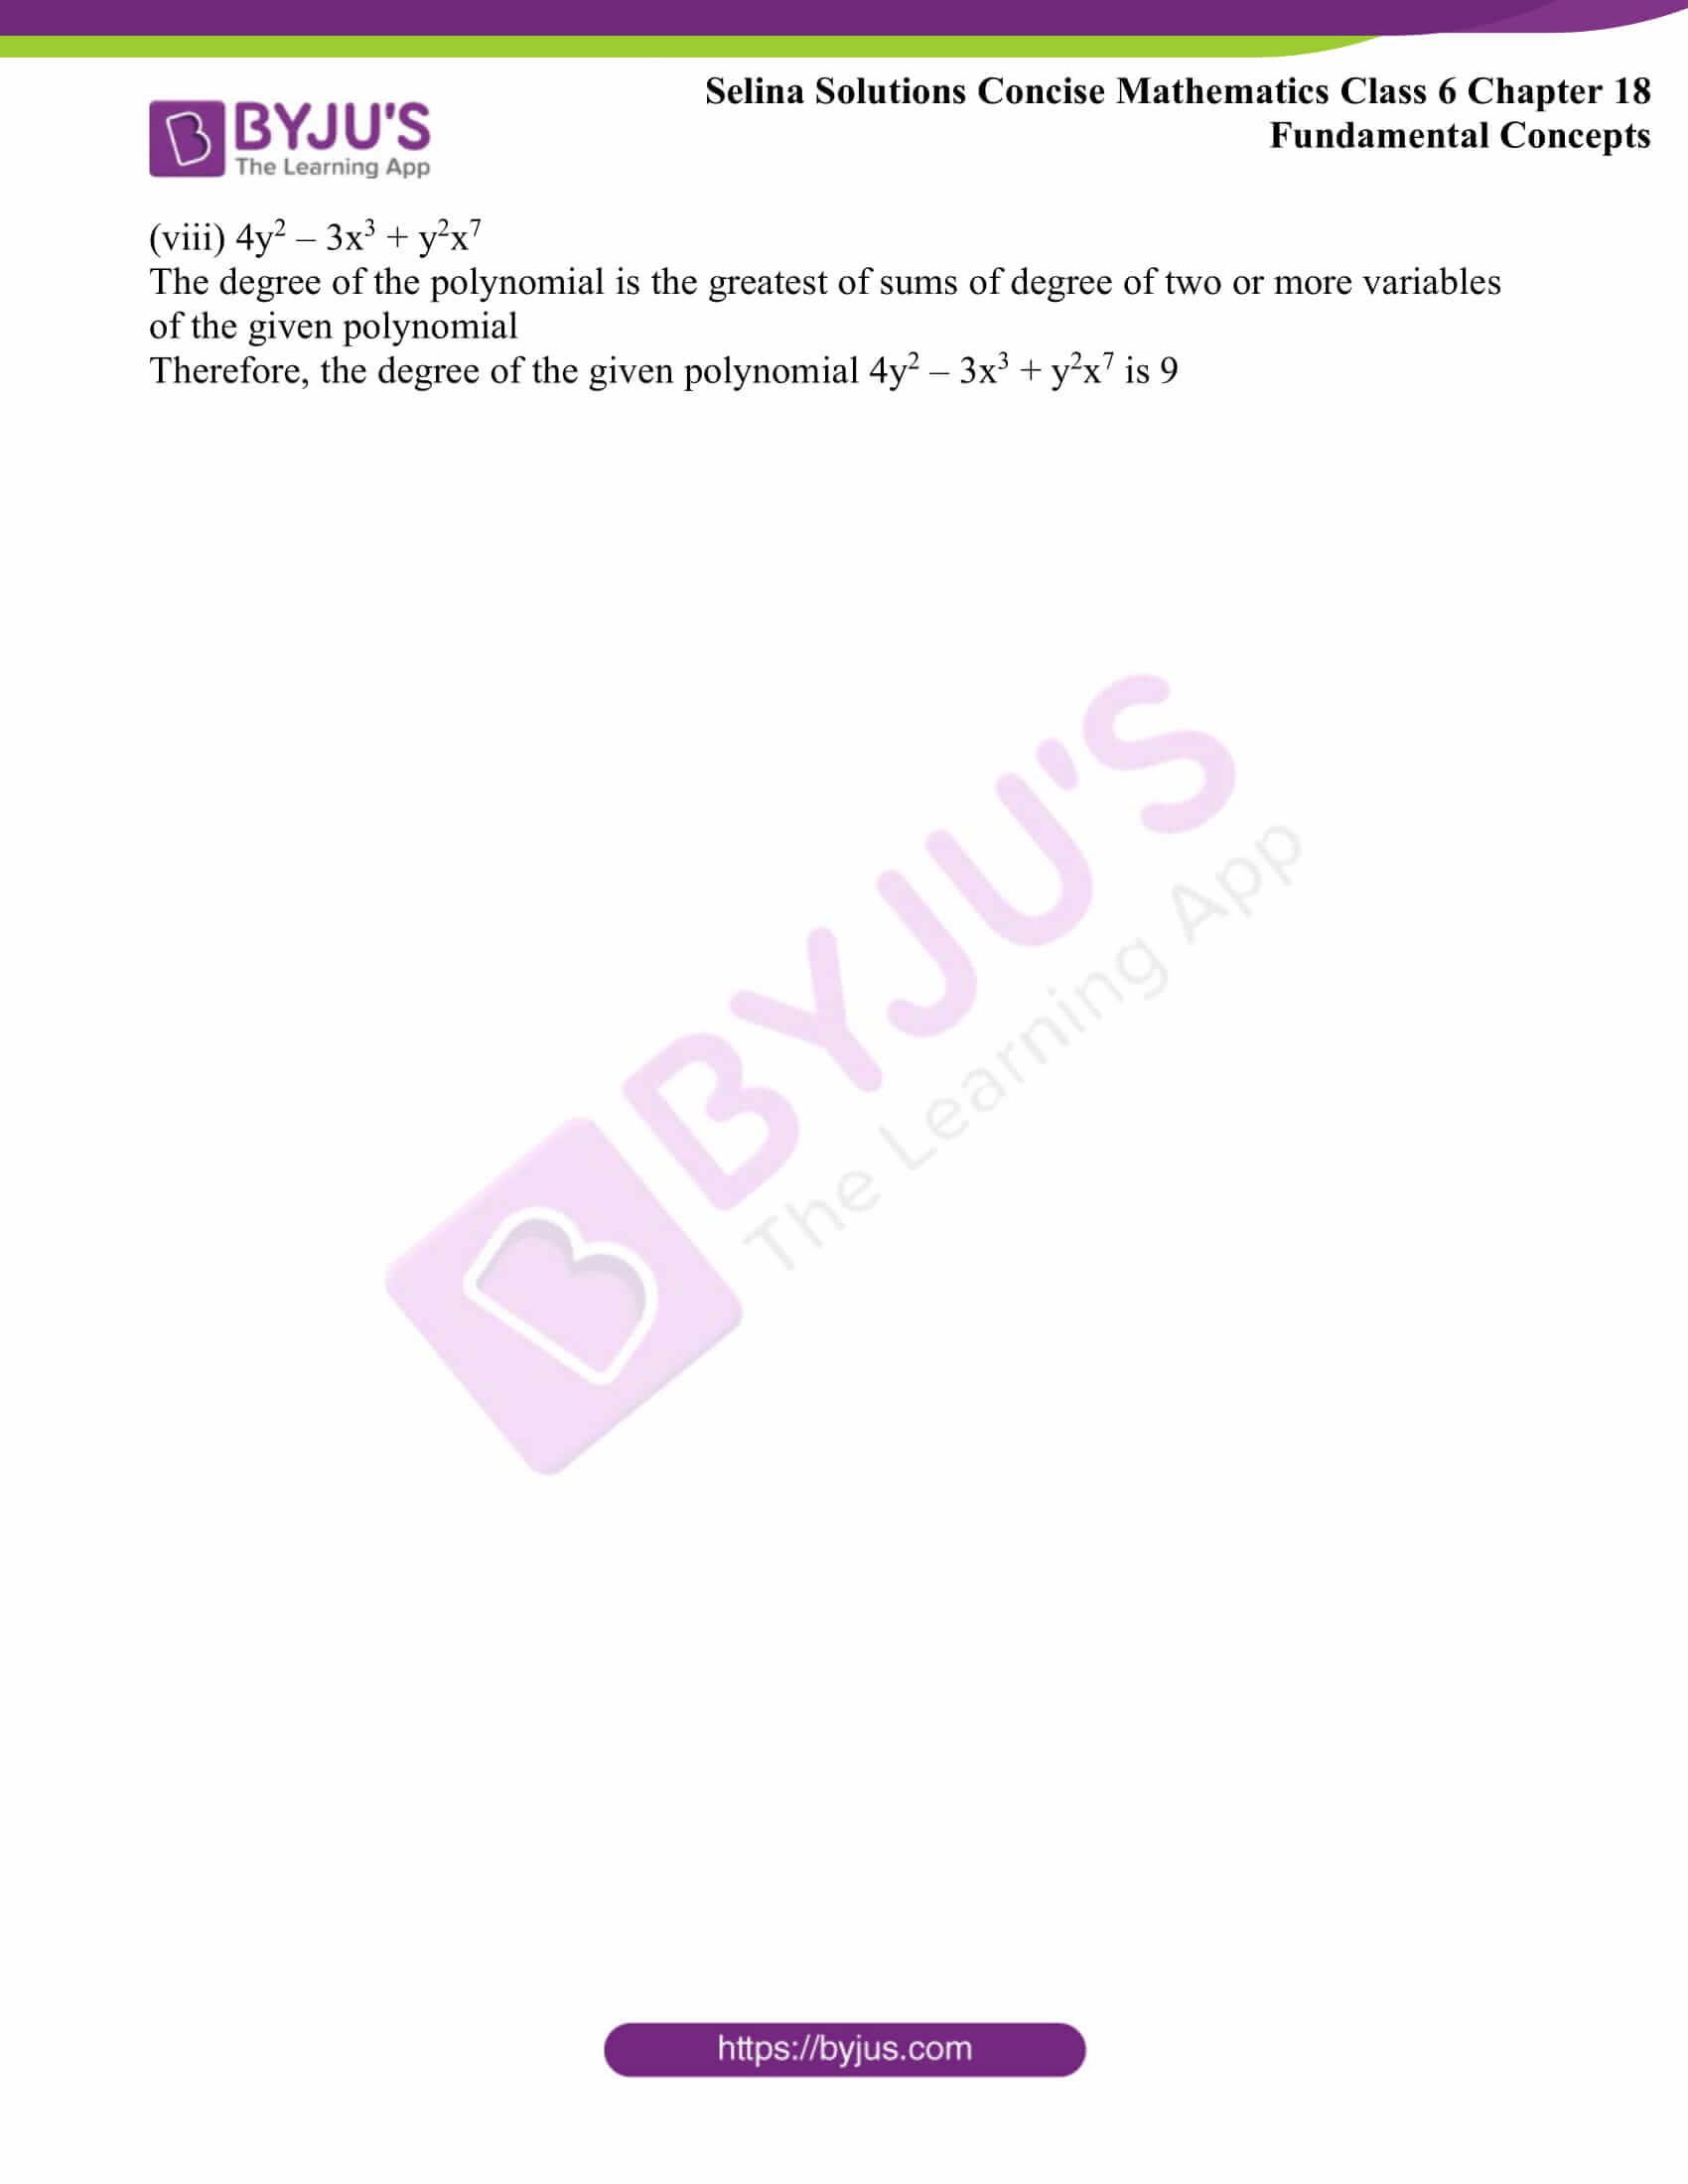 selina solutions concise math class 6 chapter 18 ex b 8